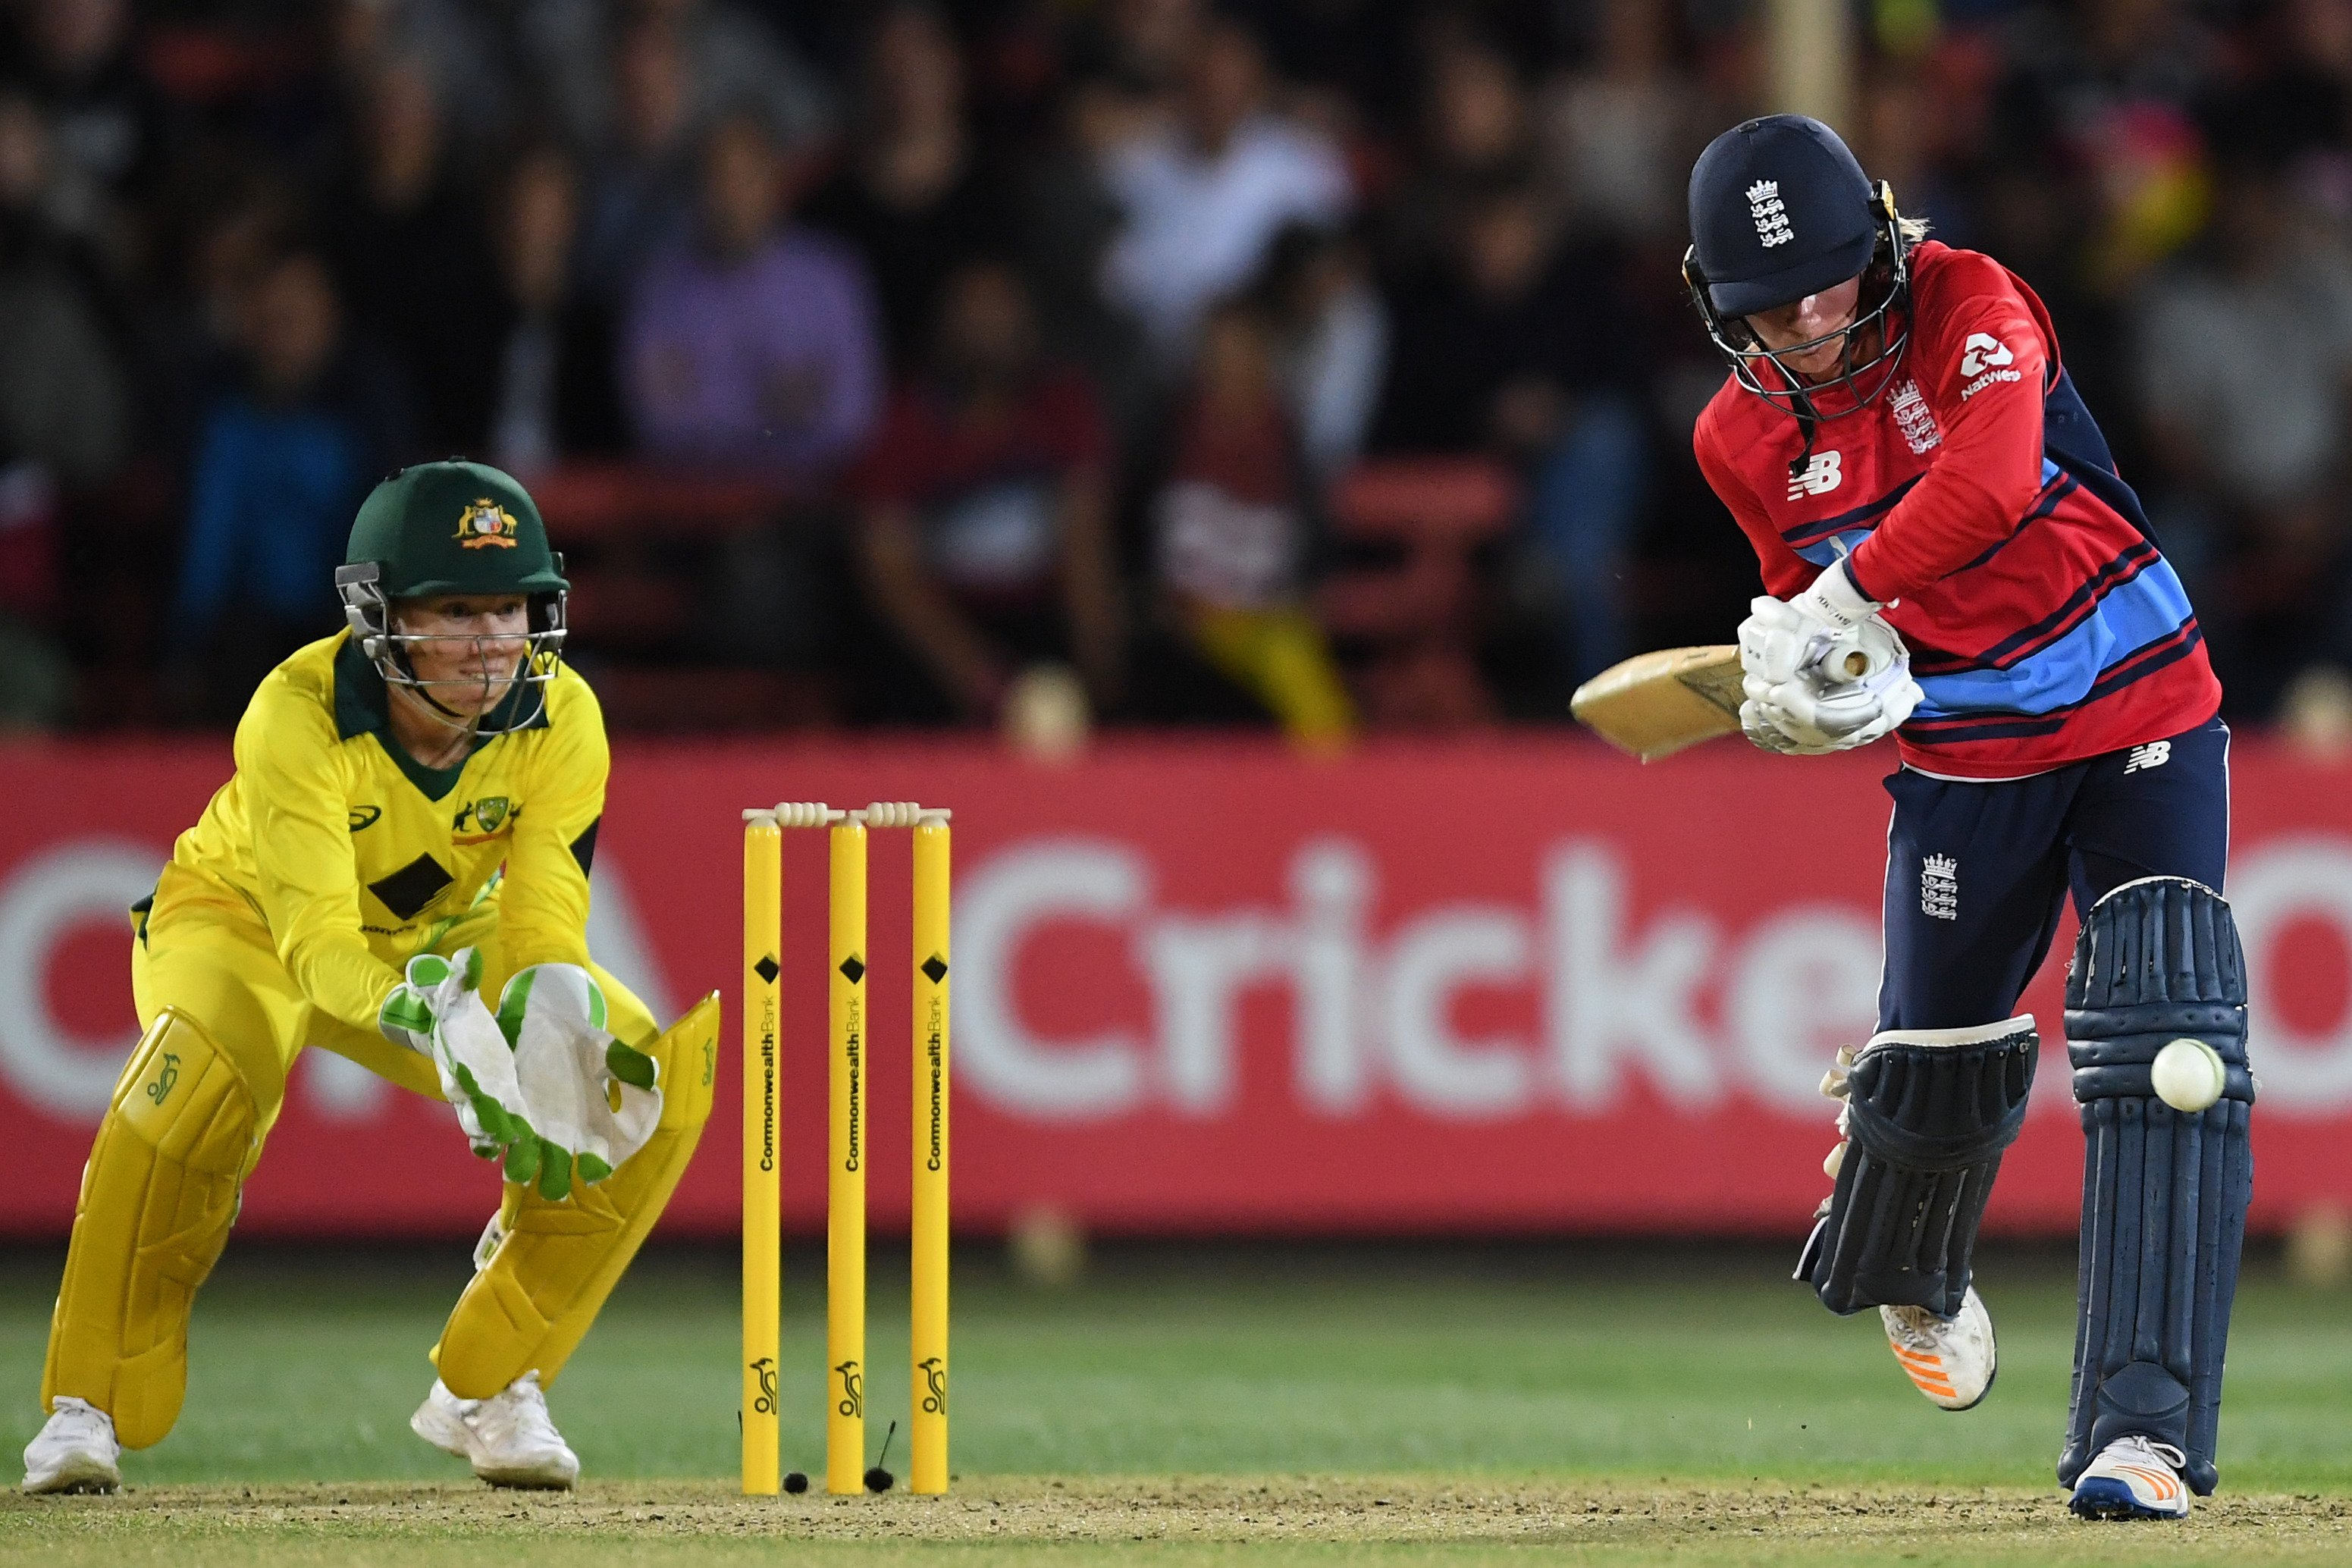 New England cricket coach Lisa Keightley wins first game in charge against Australia